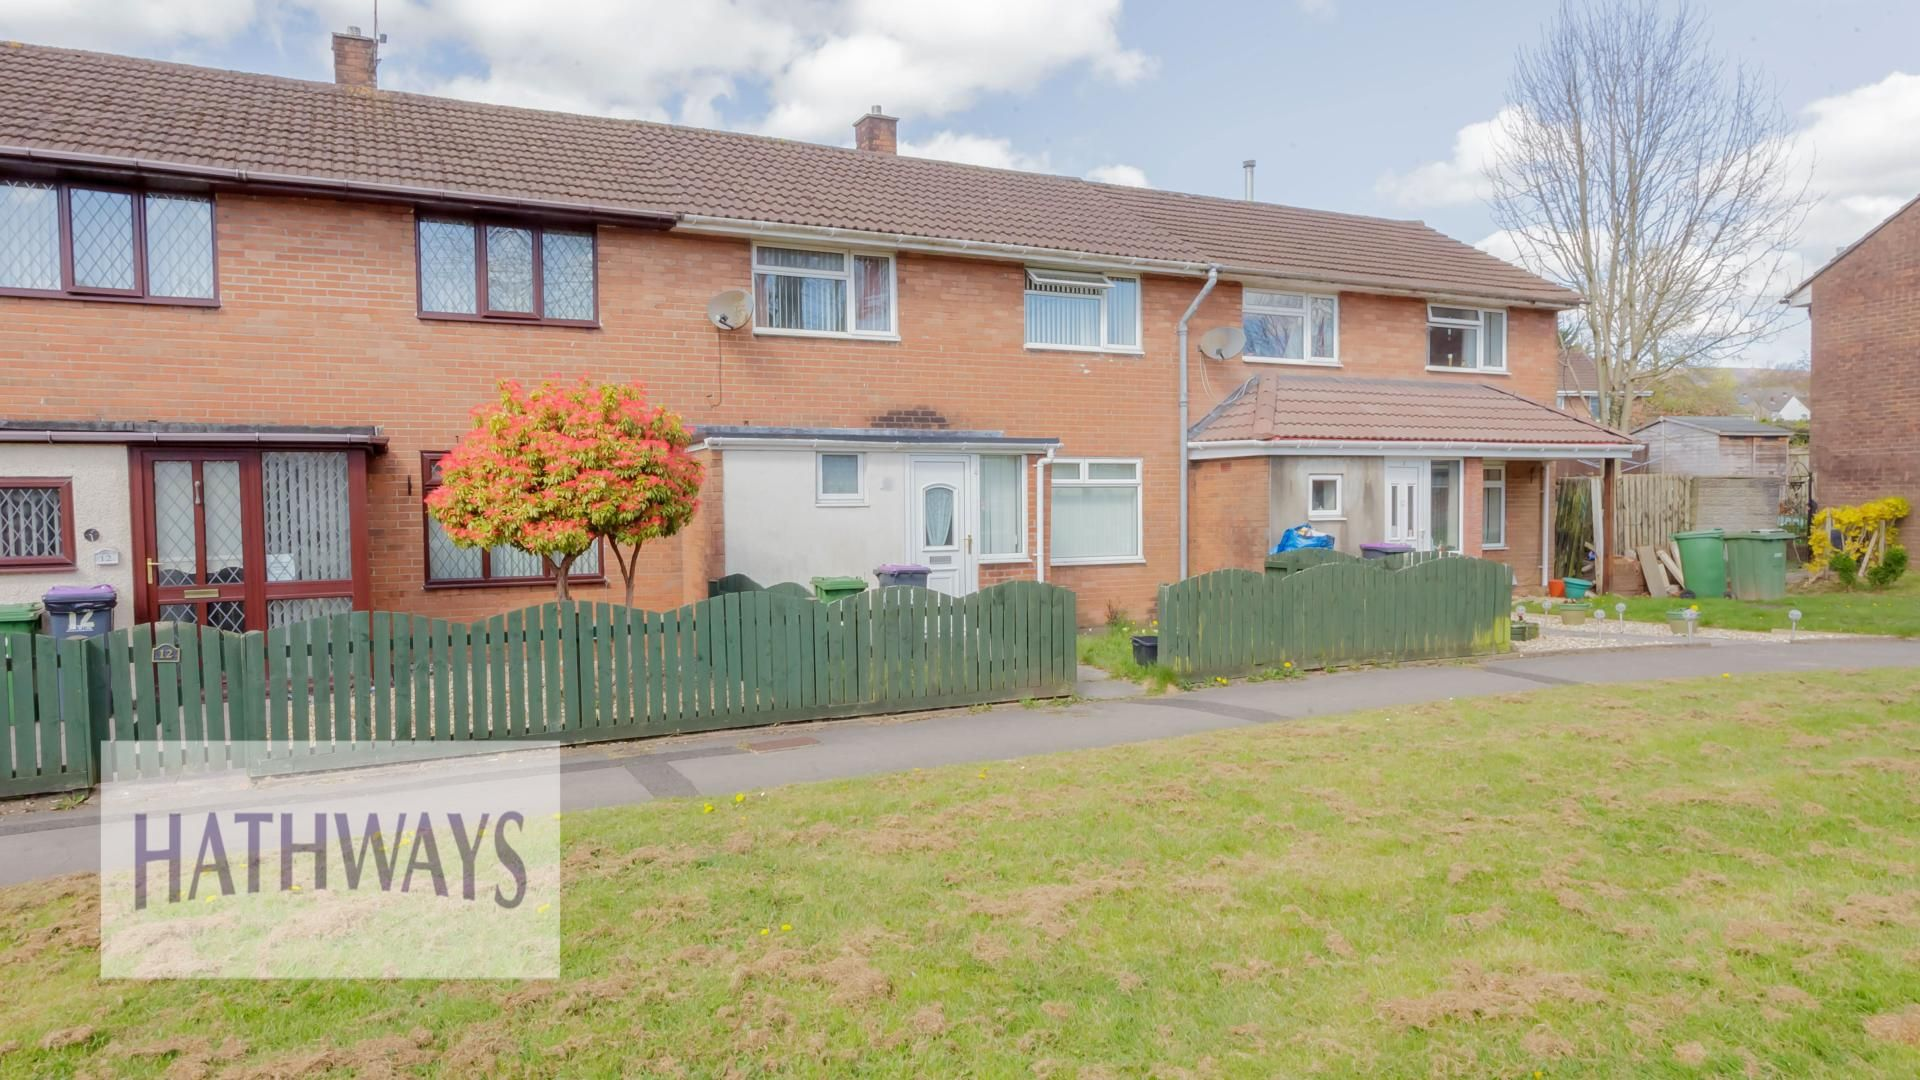 2 bed house for sale in Green Acre, NP44